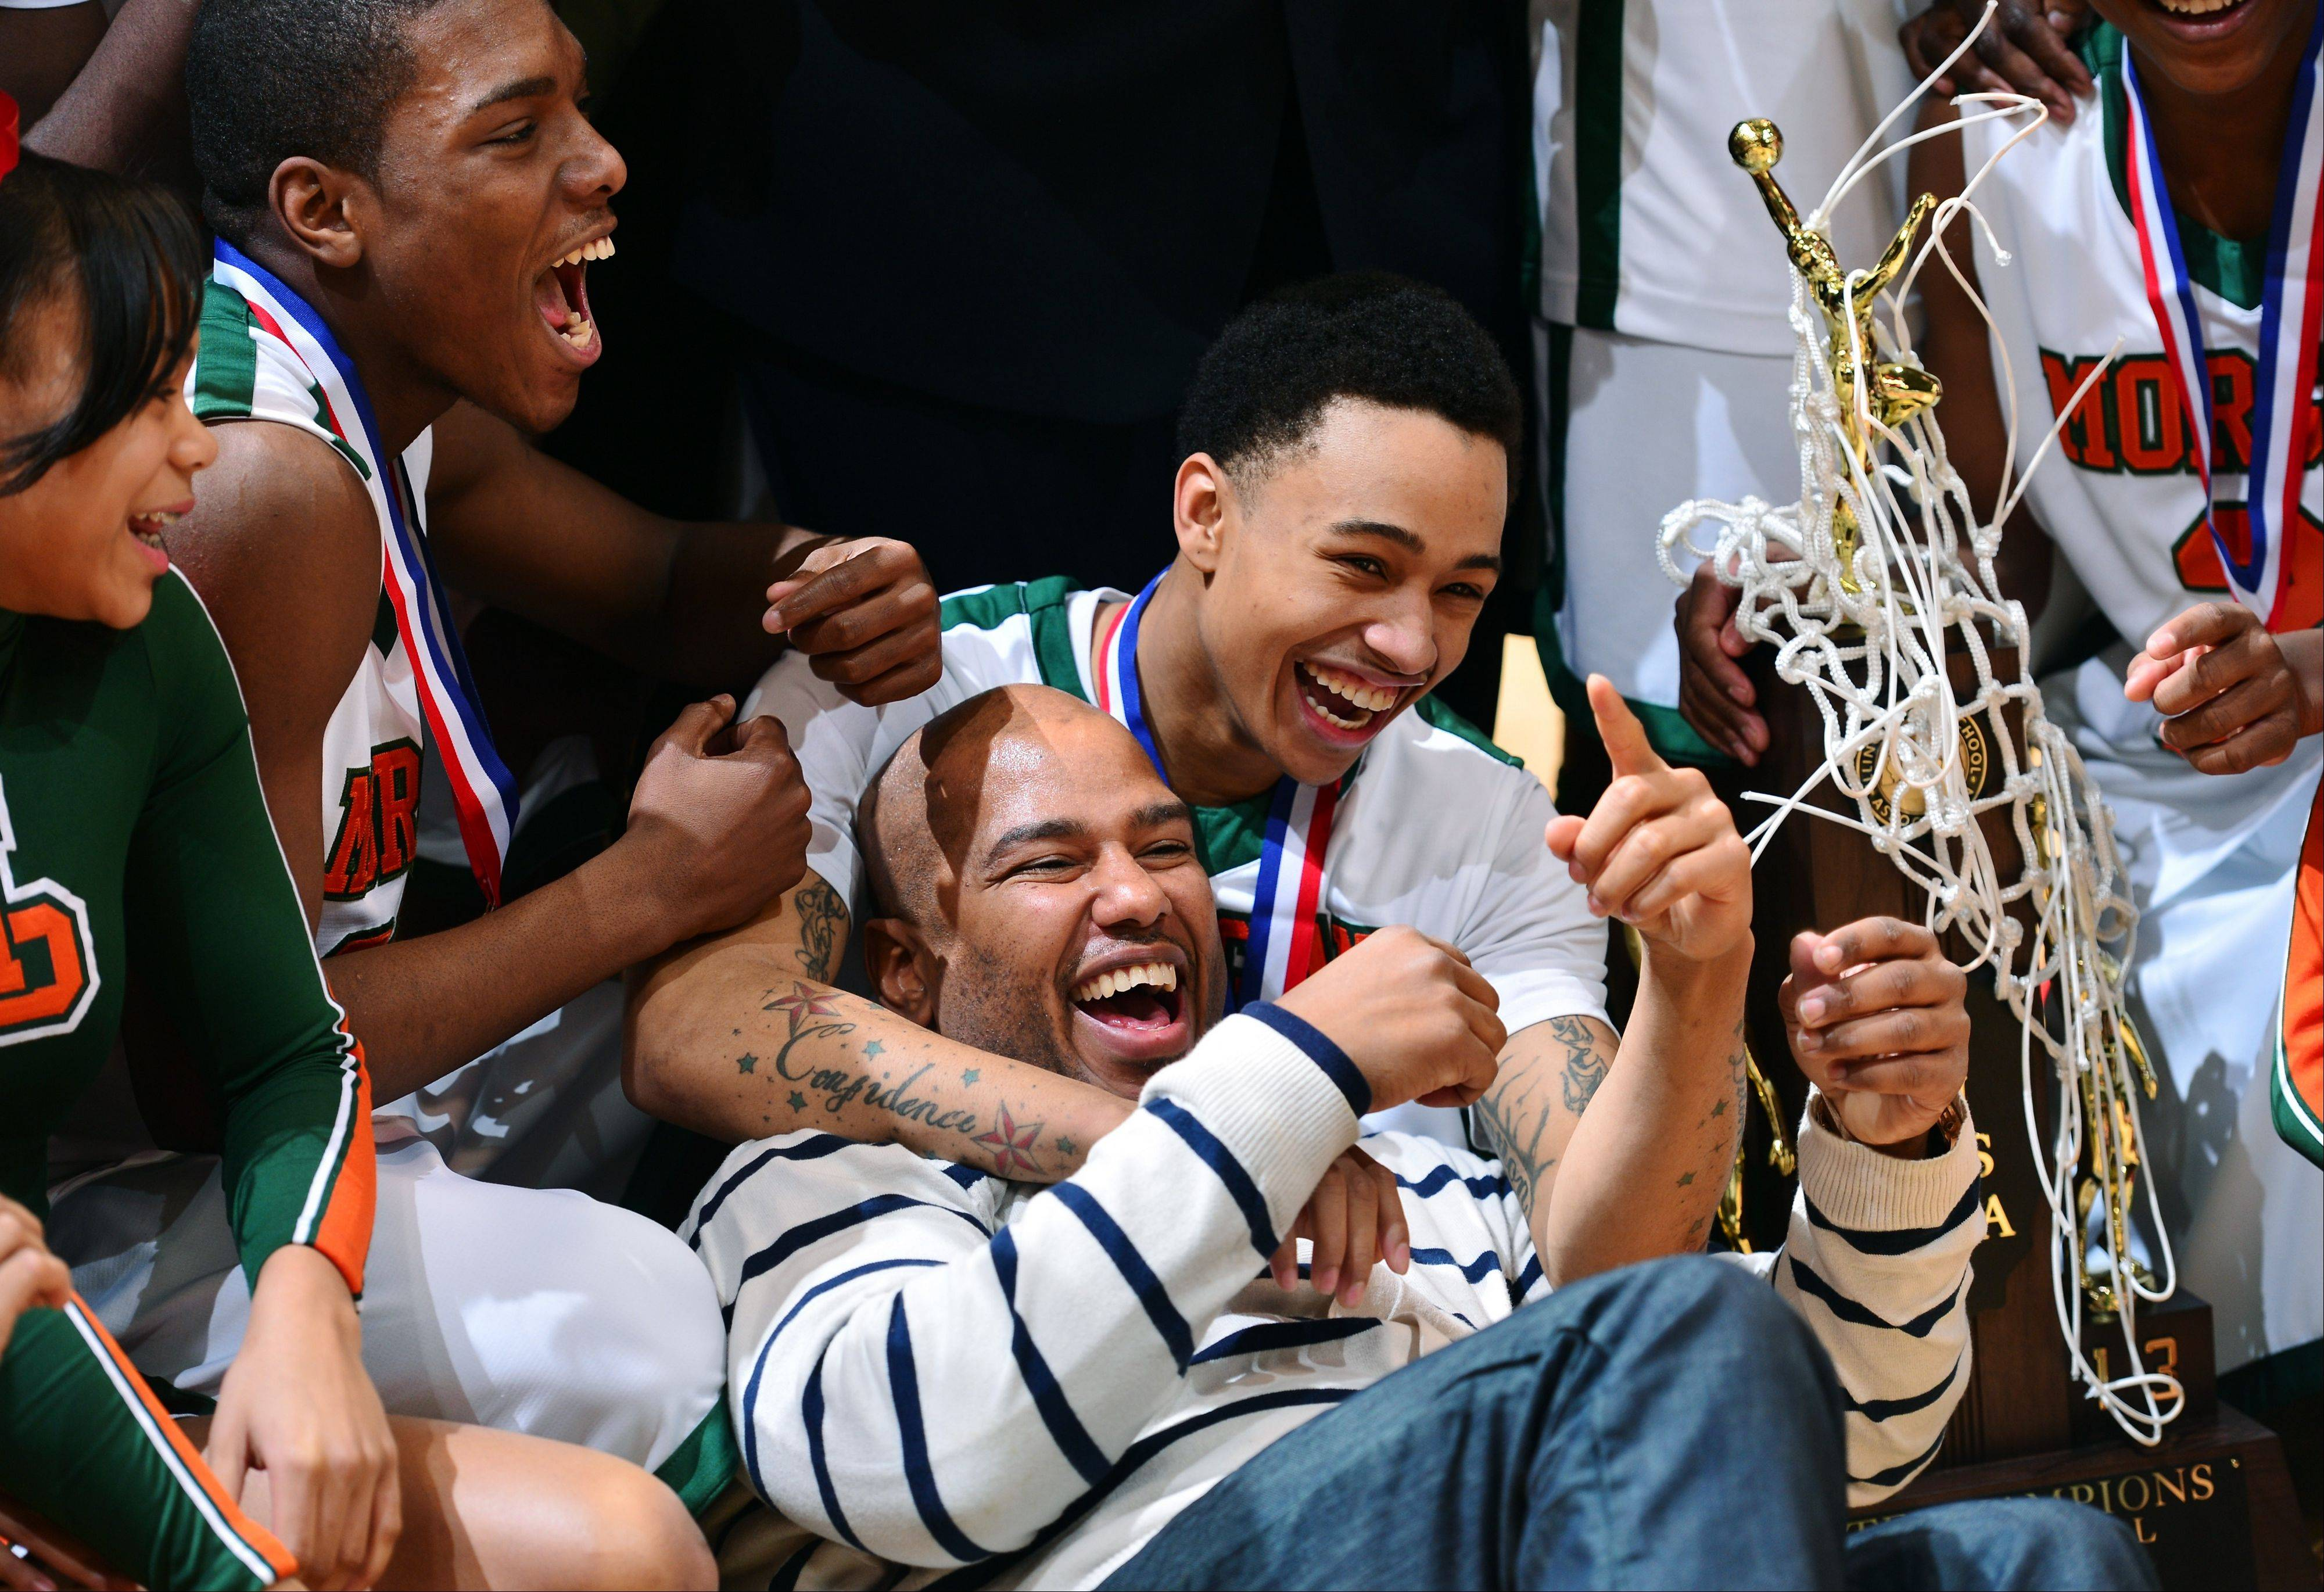 Morgan Park's Kyle Davis, middle, celebrates with former coach Che Chapel and teammates after the Mustangs' 63-48 win over Cahokia in Saturday's Class 3A state championship game in Peoria.